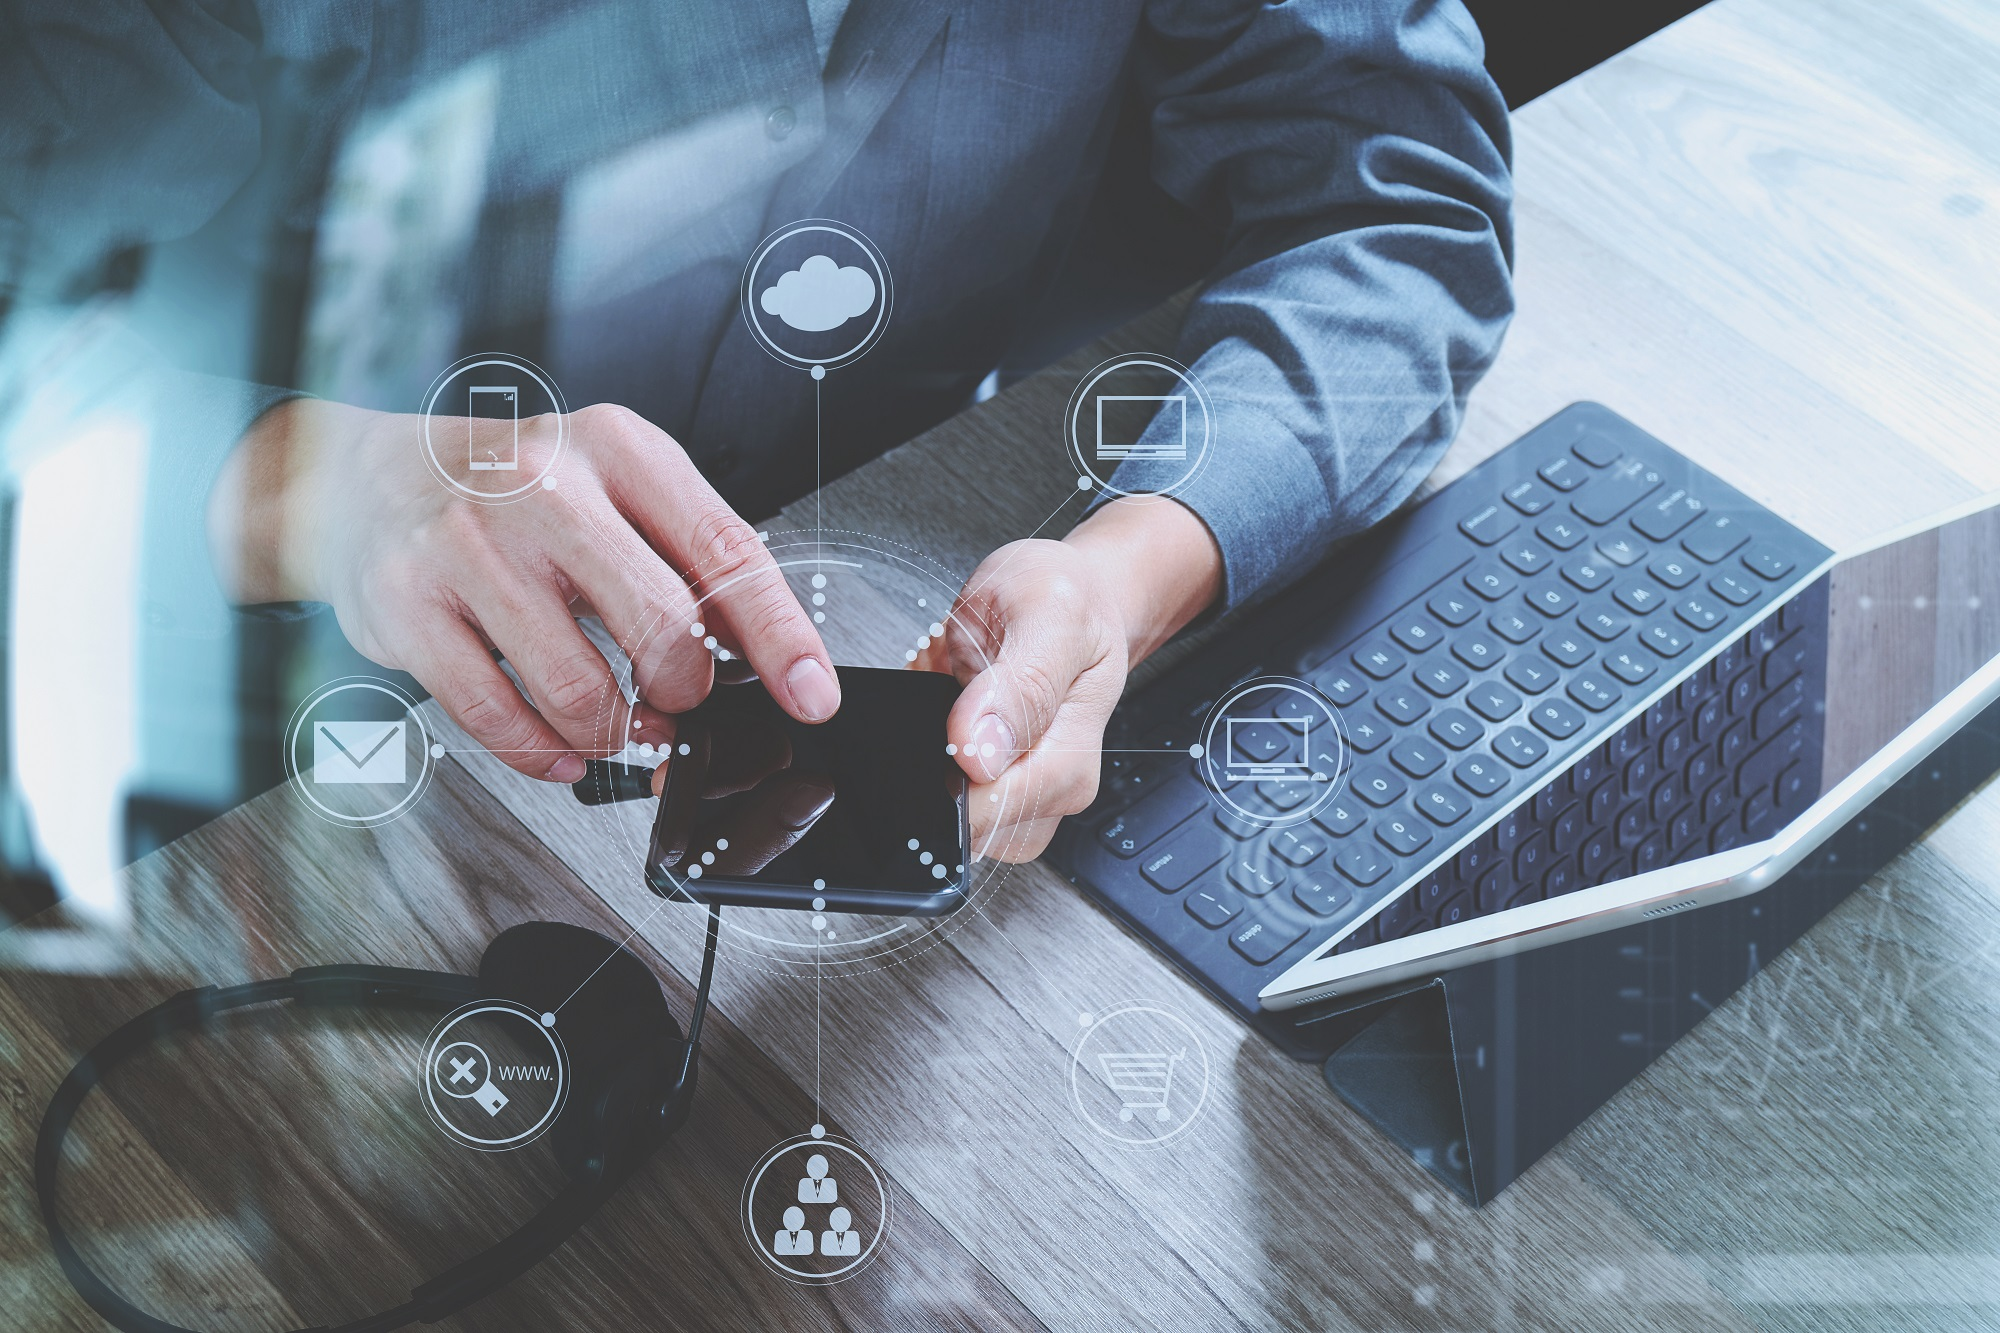 The benefits of VoIP explained